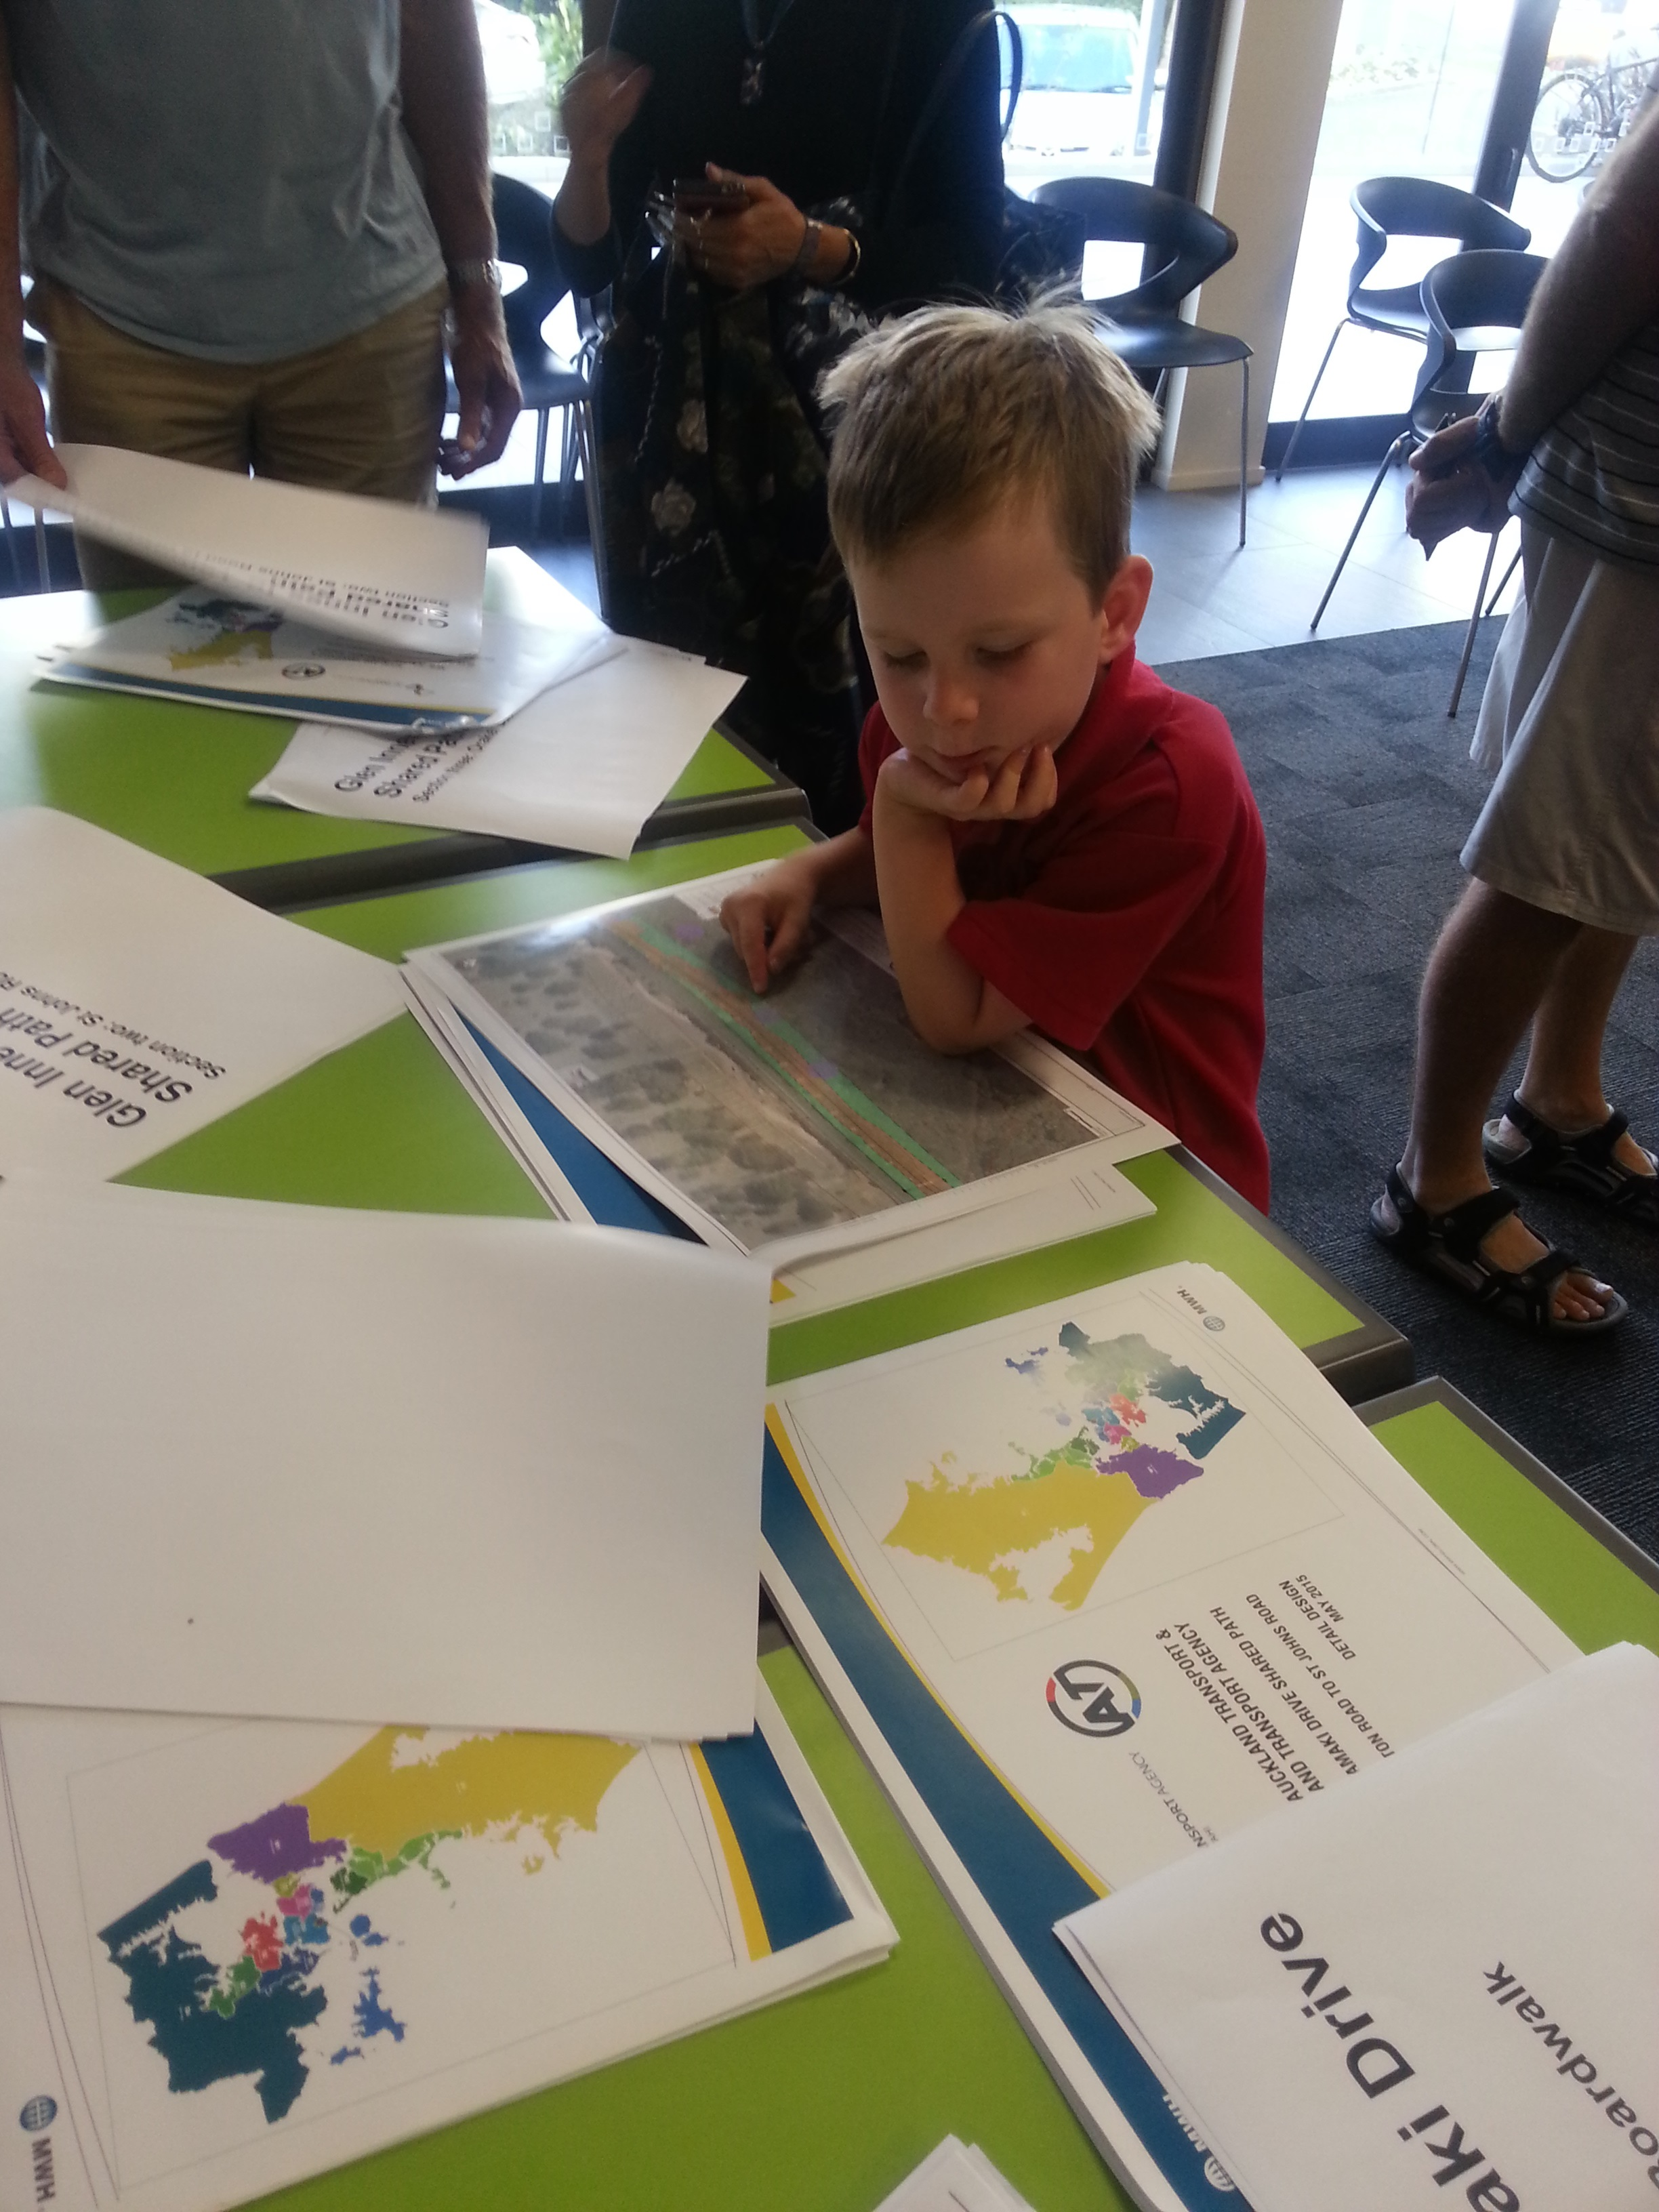 Robbie Jackson, 5, surveying proposed routes at the Eastern Pathway Consultation, April 2016